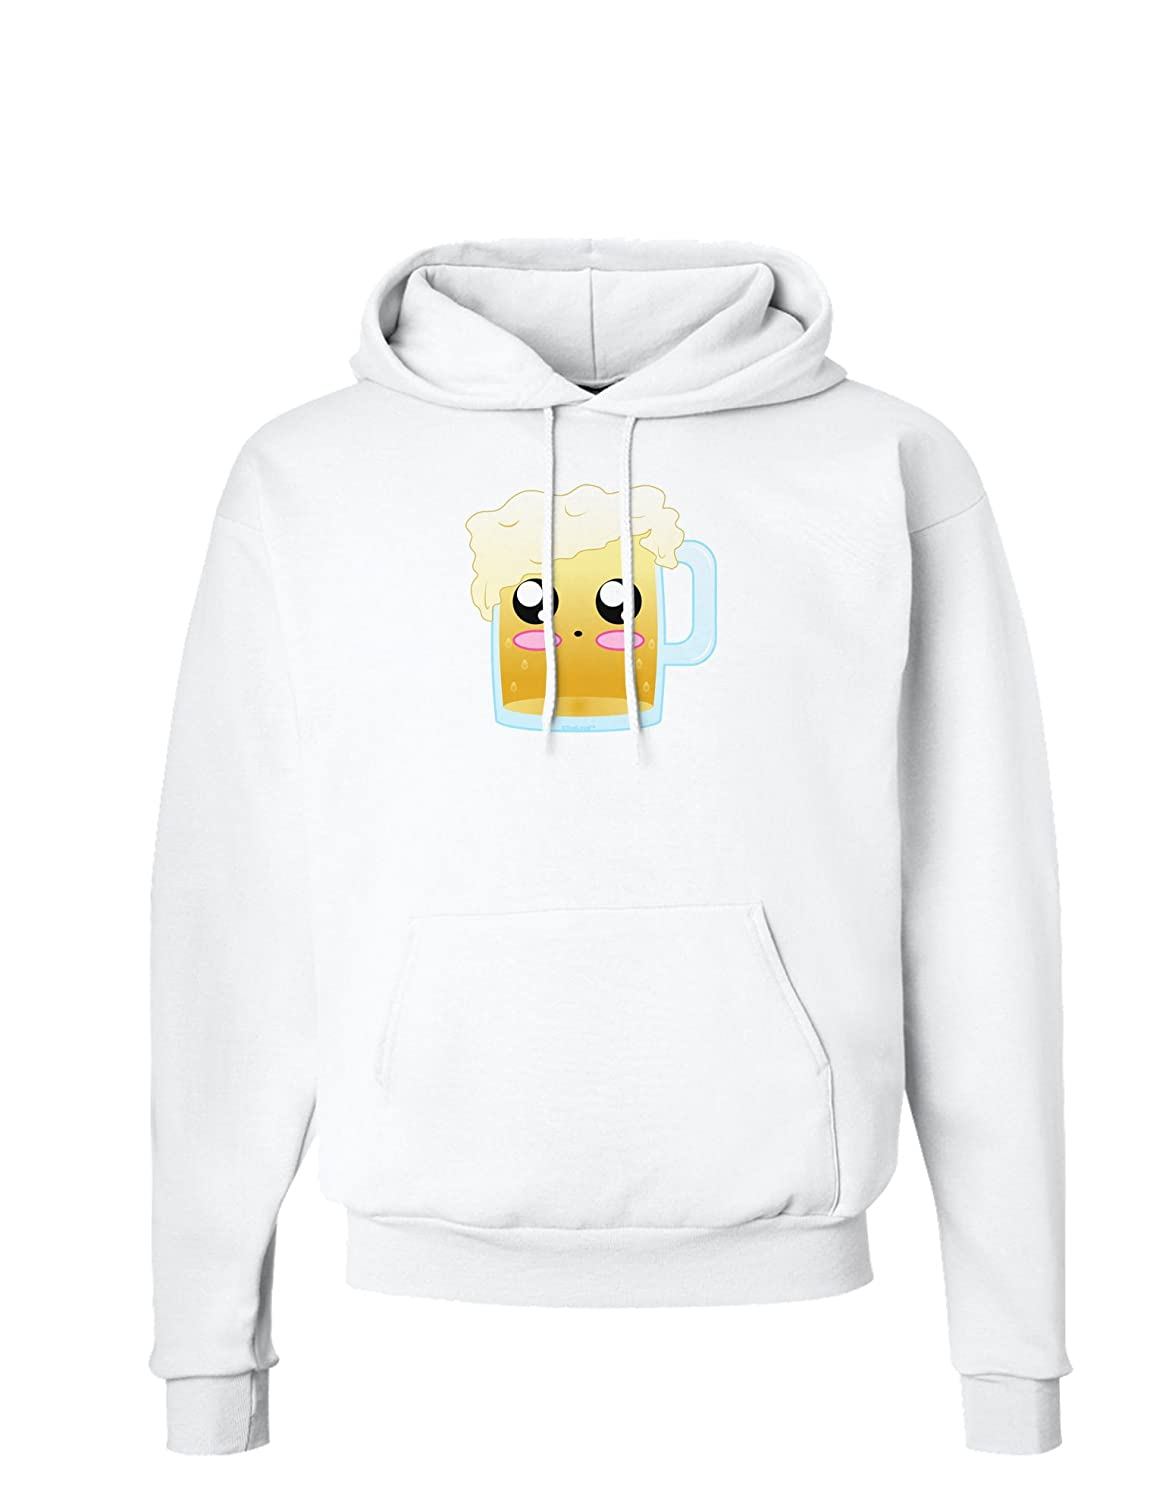 TooLoud Draft the cute Beer Hoodie Sweatshirt